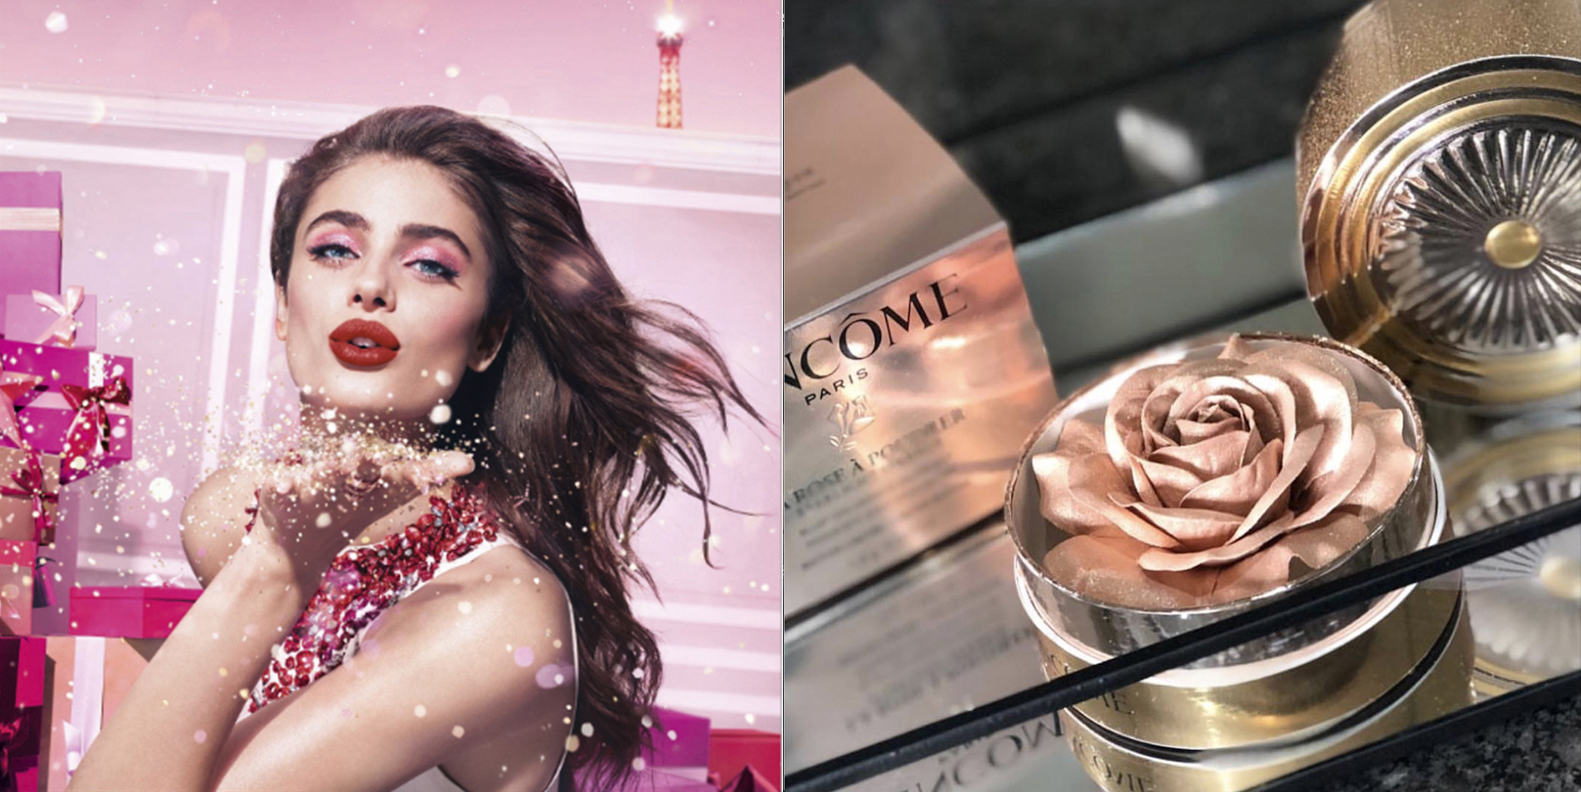 STARLIGHT SPARKLE ,COLLECTION MAQUILLAGE NOEL 2018,  LANCÔME , LANCÔME FRANCE , HYPNÔSE DRAMA , ABSOLU ROUGE , LA ROSE À POUDRER LUMIERE D'ÉTOILE , ,ROSEMADEMOISELLE , ROSE MADEMOISELLE, BLOG BEAUTÉ , PARIS , BELGIQUE , REVUE , AVIS ,